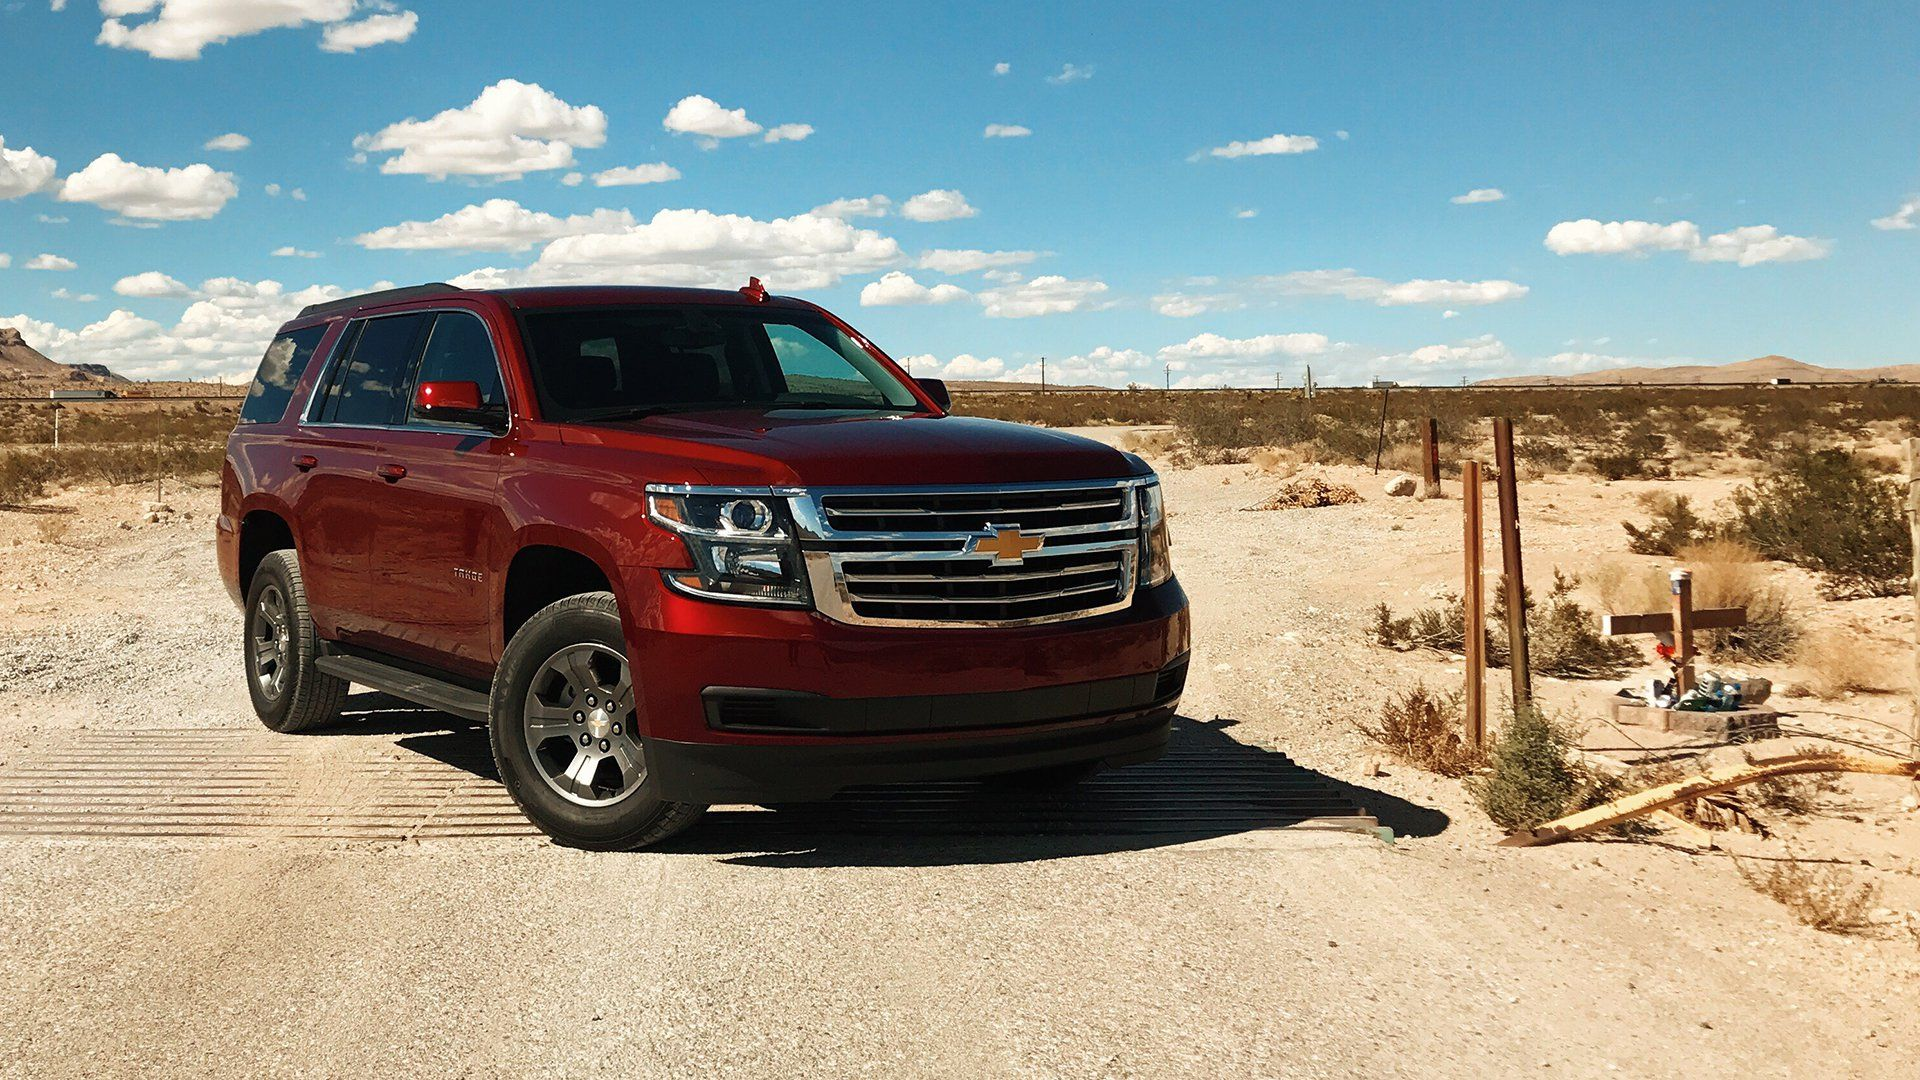 Up Where We Belong The 2018 Chevy Tahoe Custom Conquers The High Desert Of Nevada Chevy Tahoe Tahoe Chevy